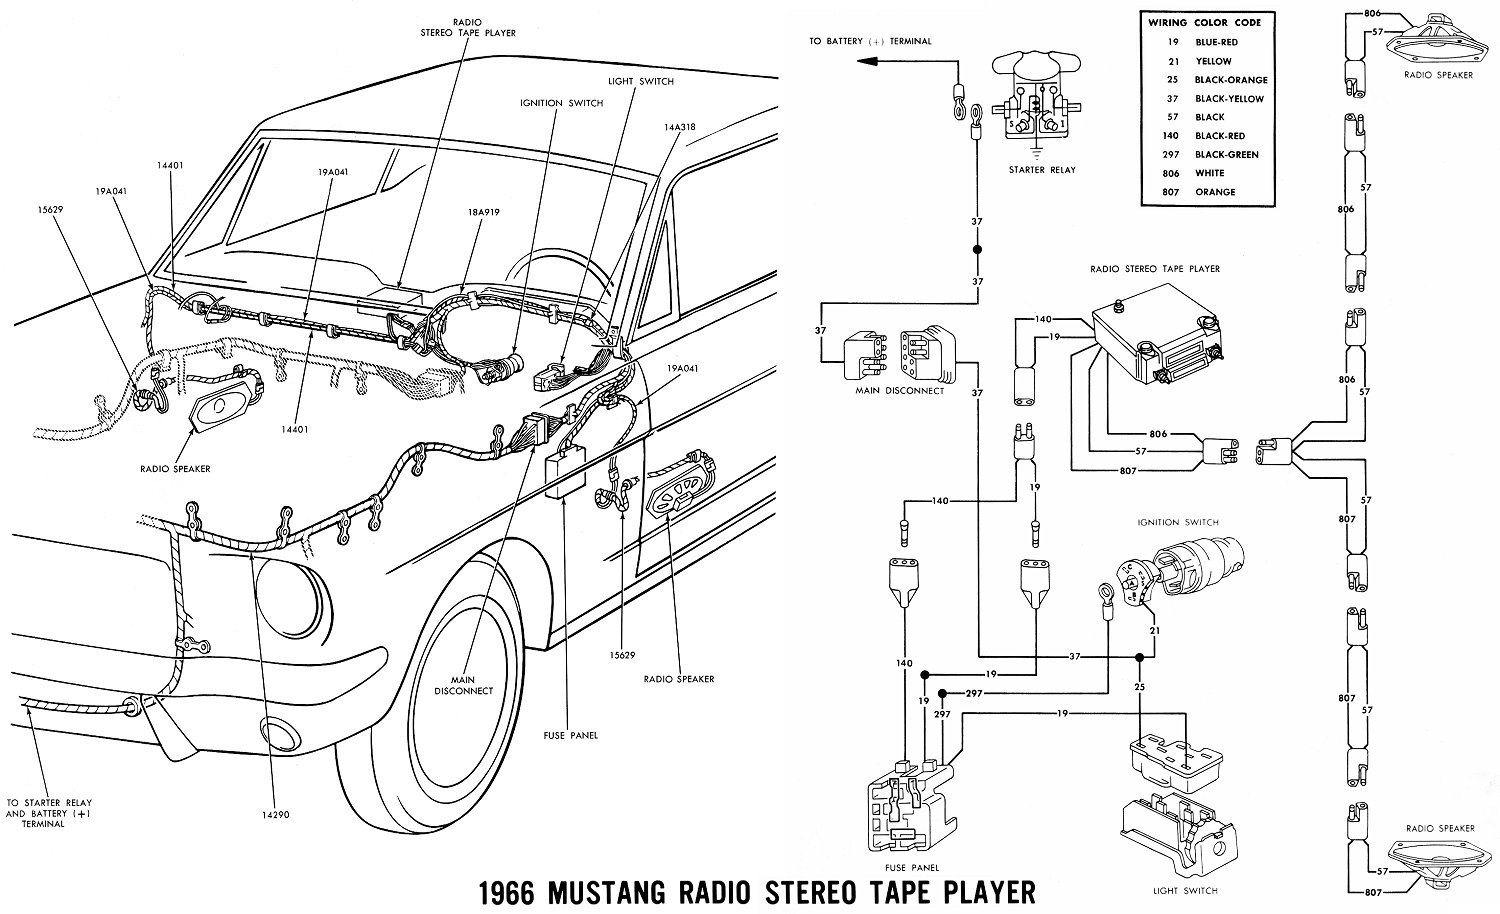 1966 mustang wiring diagram online schematic diagram u2022 rh holyoak co 1969 Mustang Ignition Wiring 1966 Mustang Starter Wiring